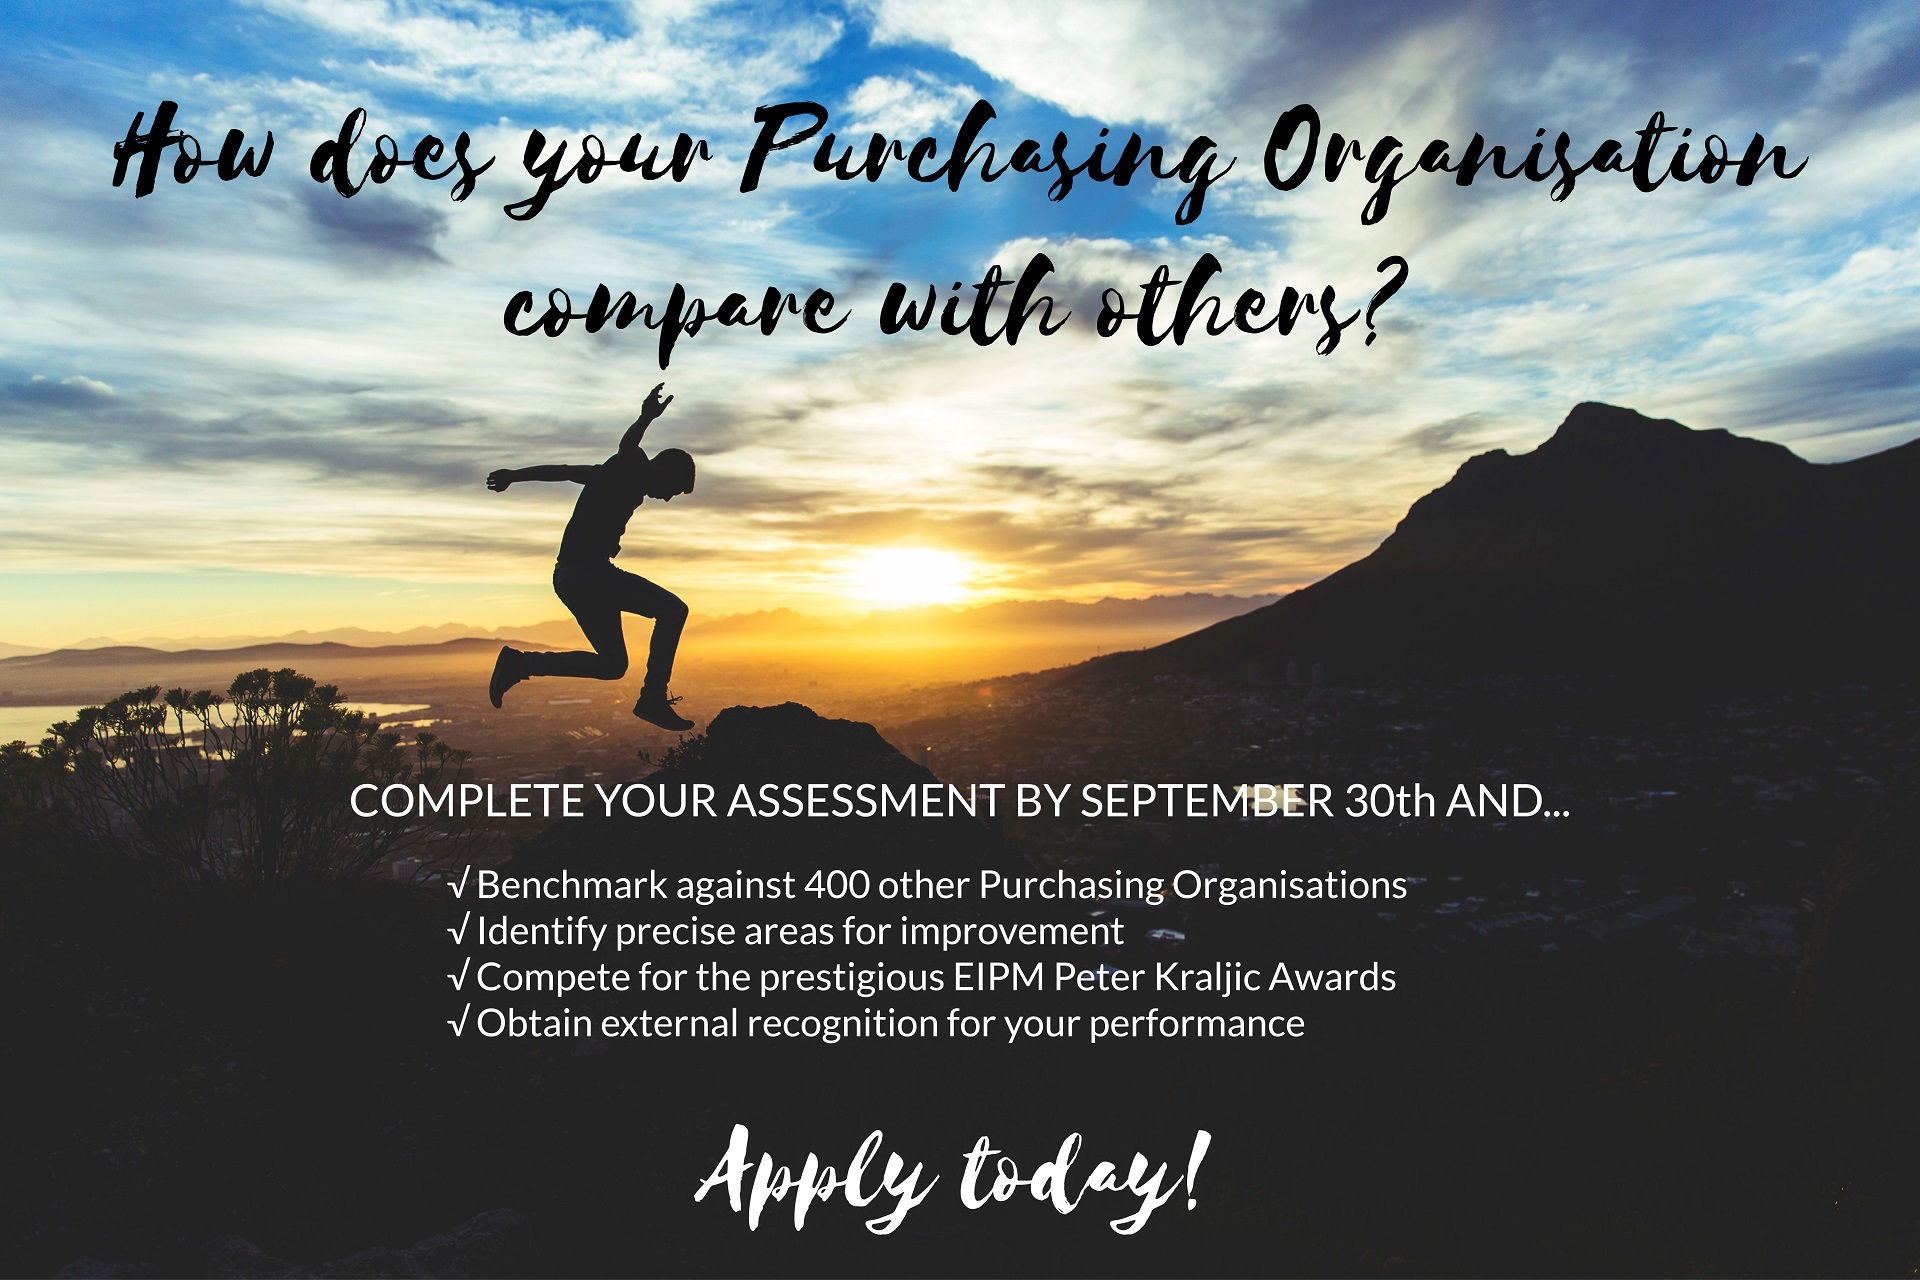 Apply today for the 2017 EIPM Peter Kraljic Awards!